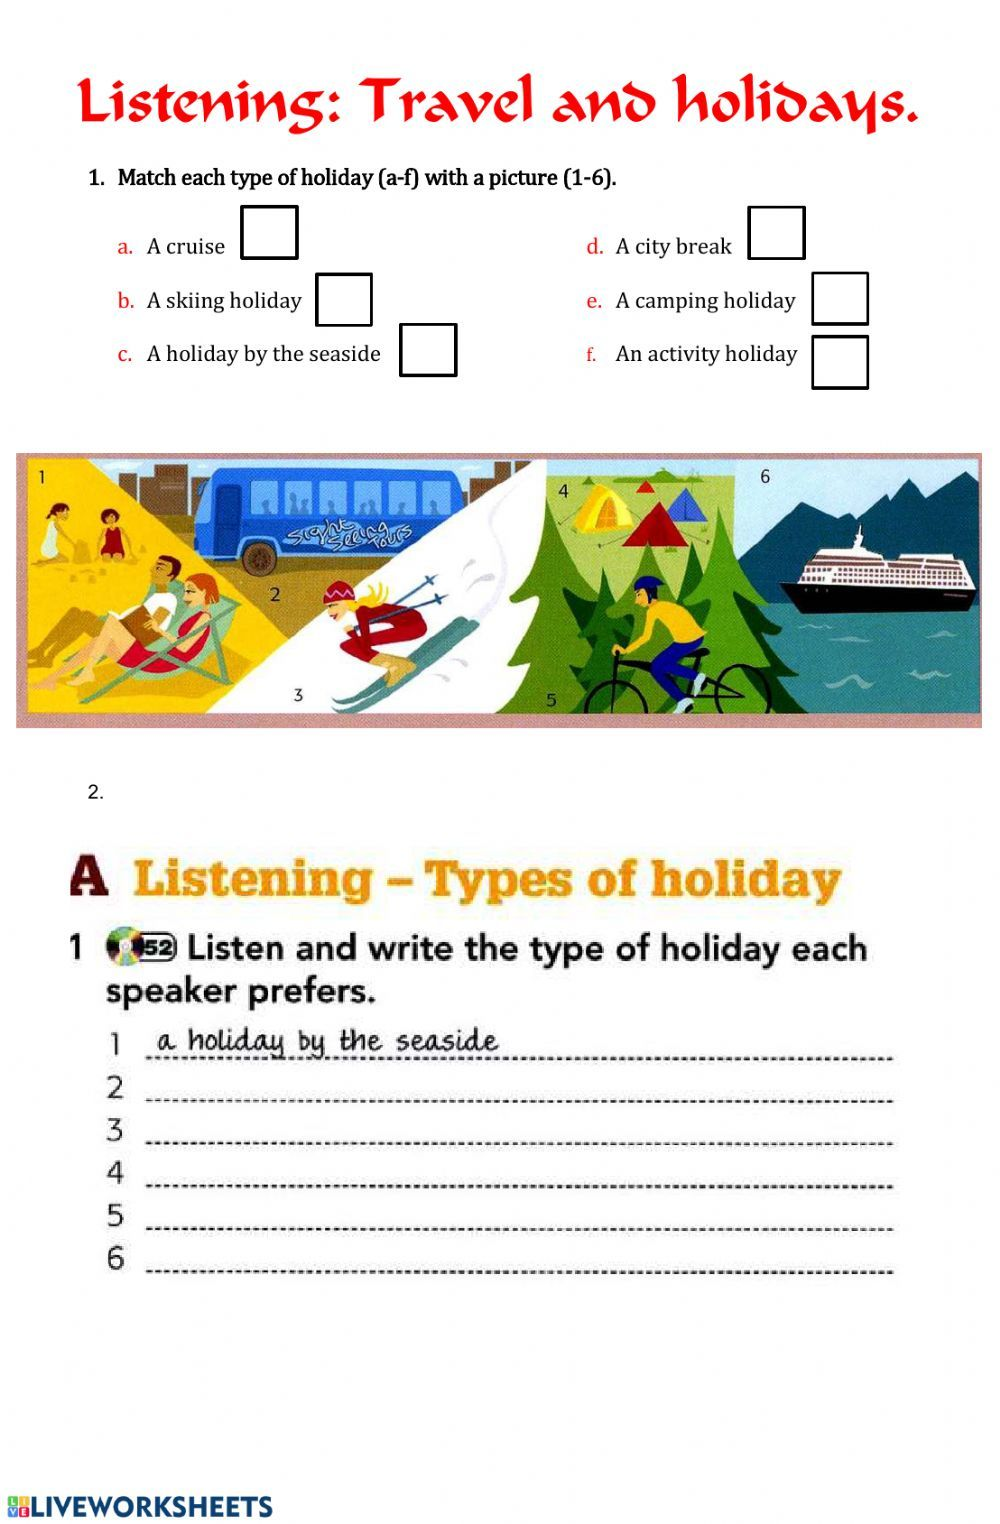 Travel And Tourism Interactive And Downloadable Worksheet You Can Do The Exercises On Holiday Worksheets Travel And Tourism English As A Second Language Esl [ 1524 x 1000 Pixel ]